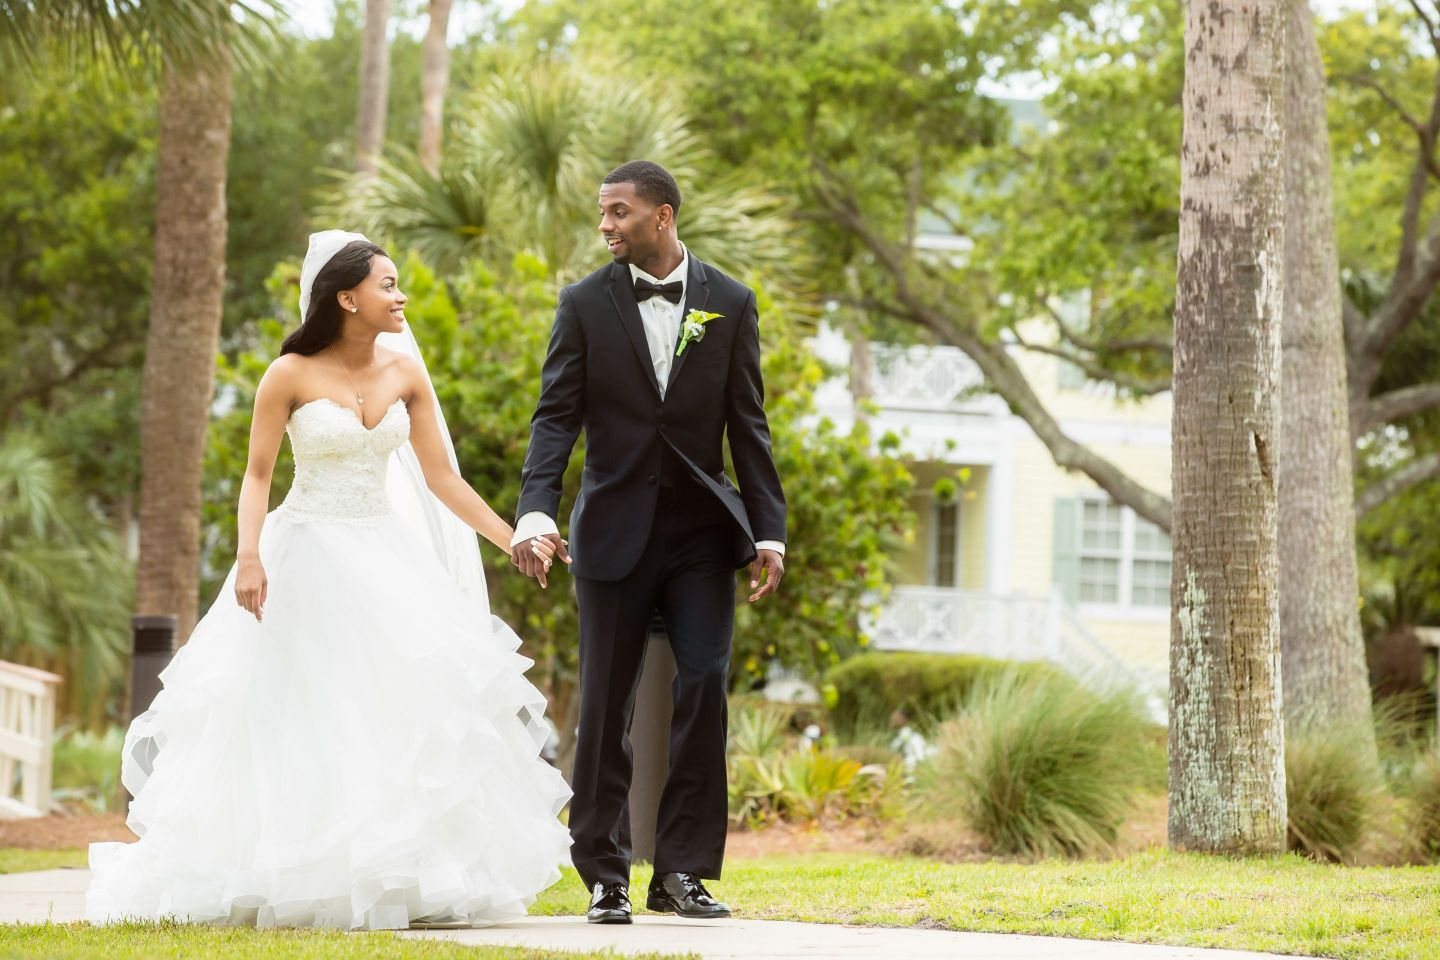 Foster-Wedding-by-Andre-Brown-at-Sonesta-HHI-8-1440x960 Beachfront Wedding Inspiration at the Sonesta Resort Hilton Head Island